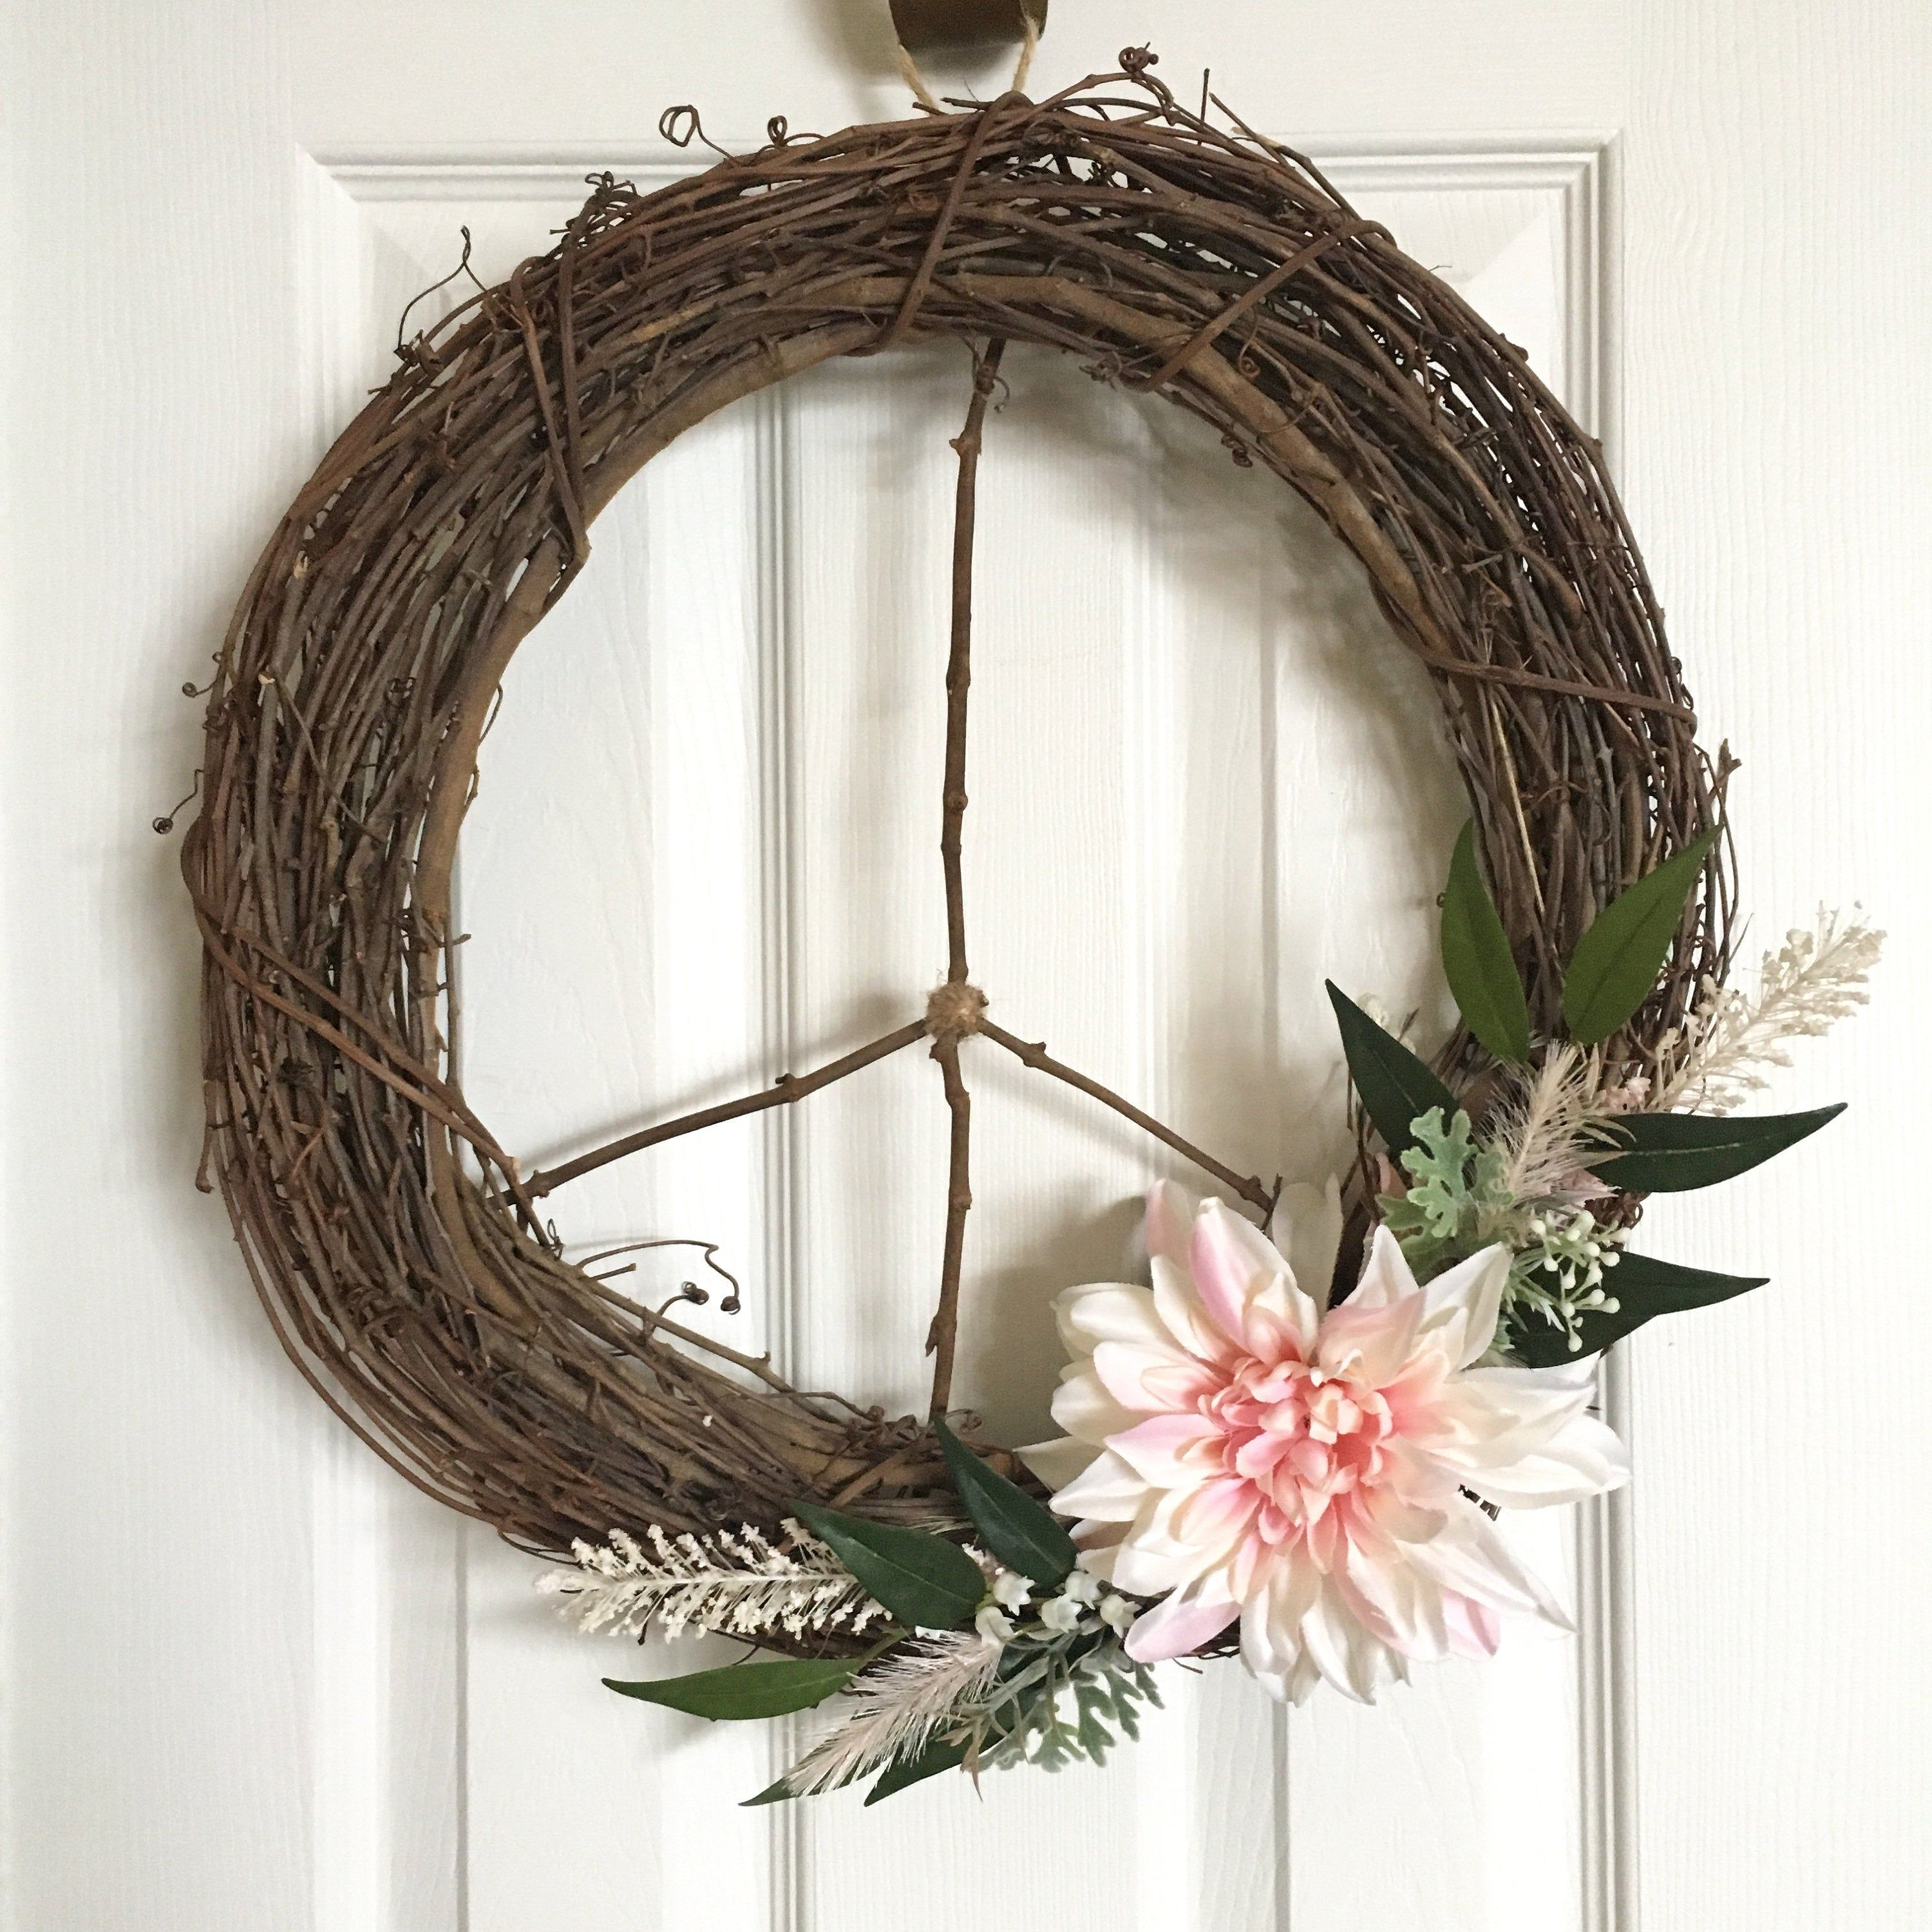 Fall Wreaths For Front Door Peace Sign Wreath Peace Wreath Wreath For Door Fall Wreath Fall Door Wreath Wreaths For Front Do Door Wreaths Fall Fall Wreaths